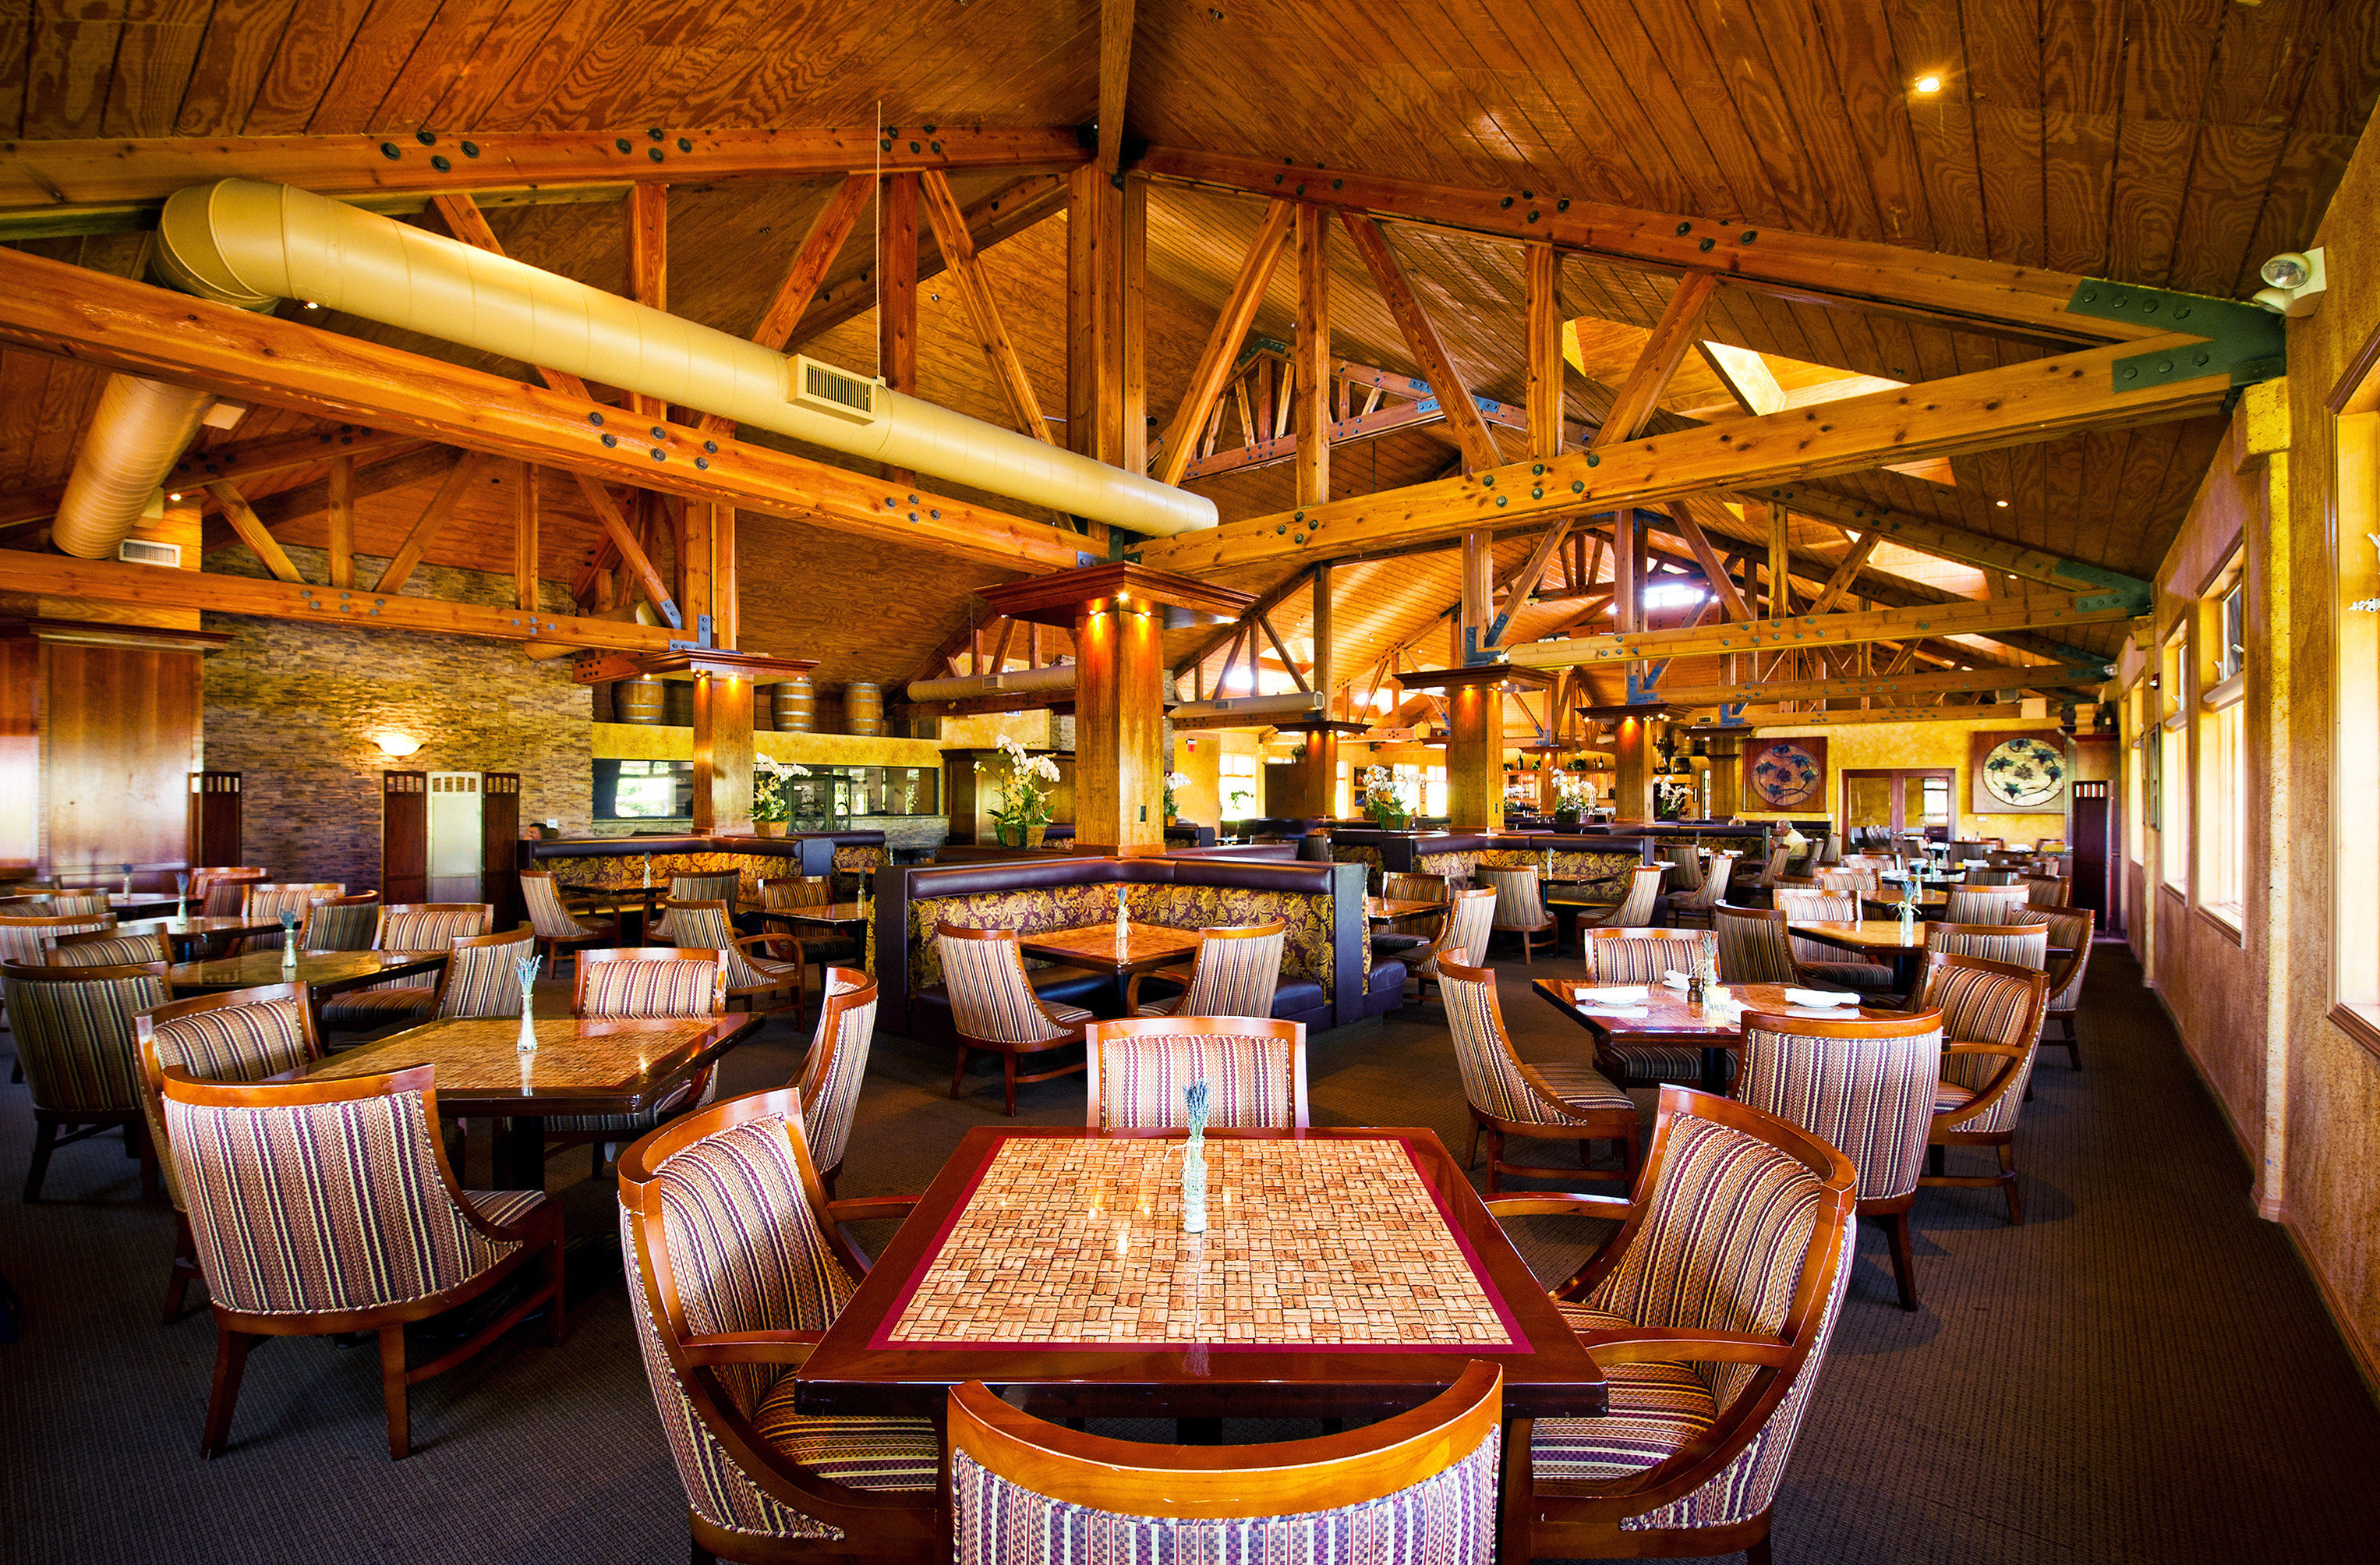 Boutique Country Dining Drink Eat Romantic Wine-Tasting Winery chair restaurant Resort Bar